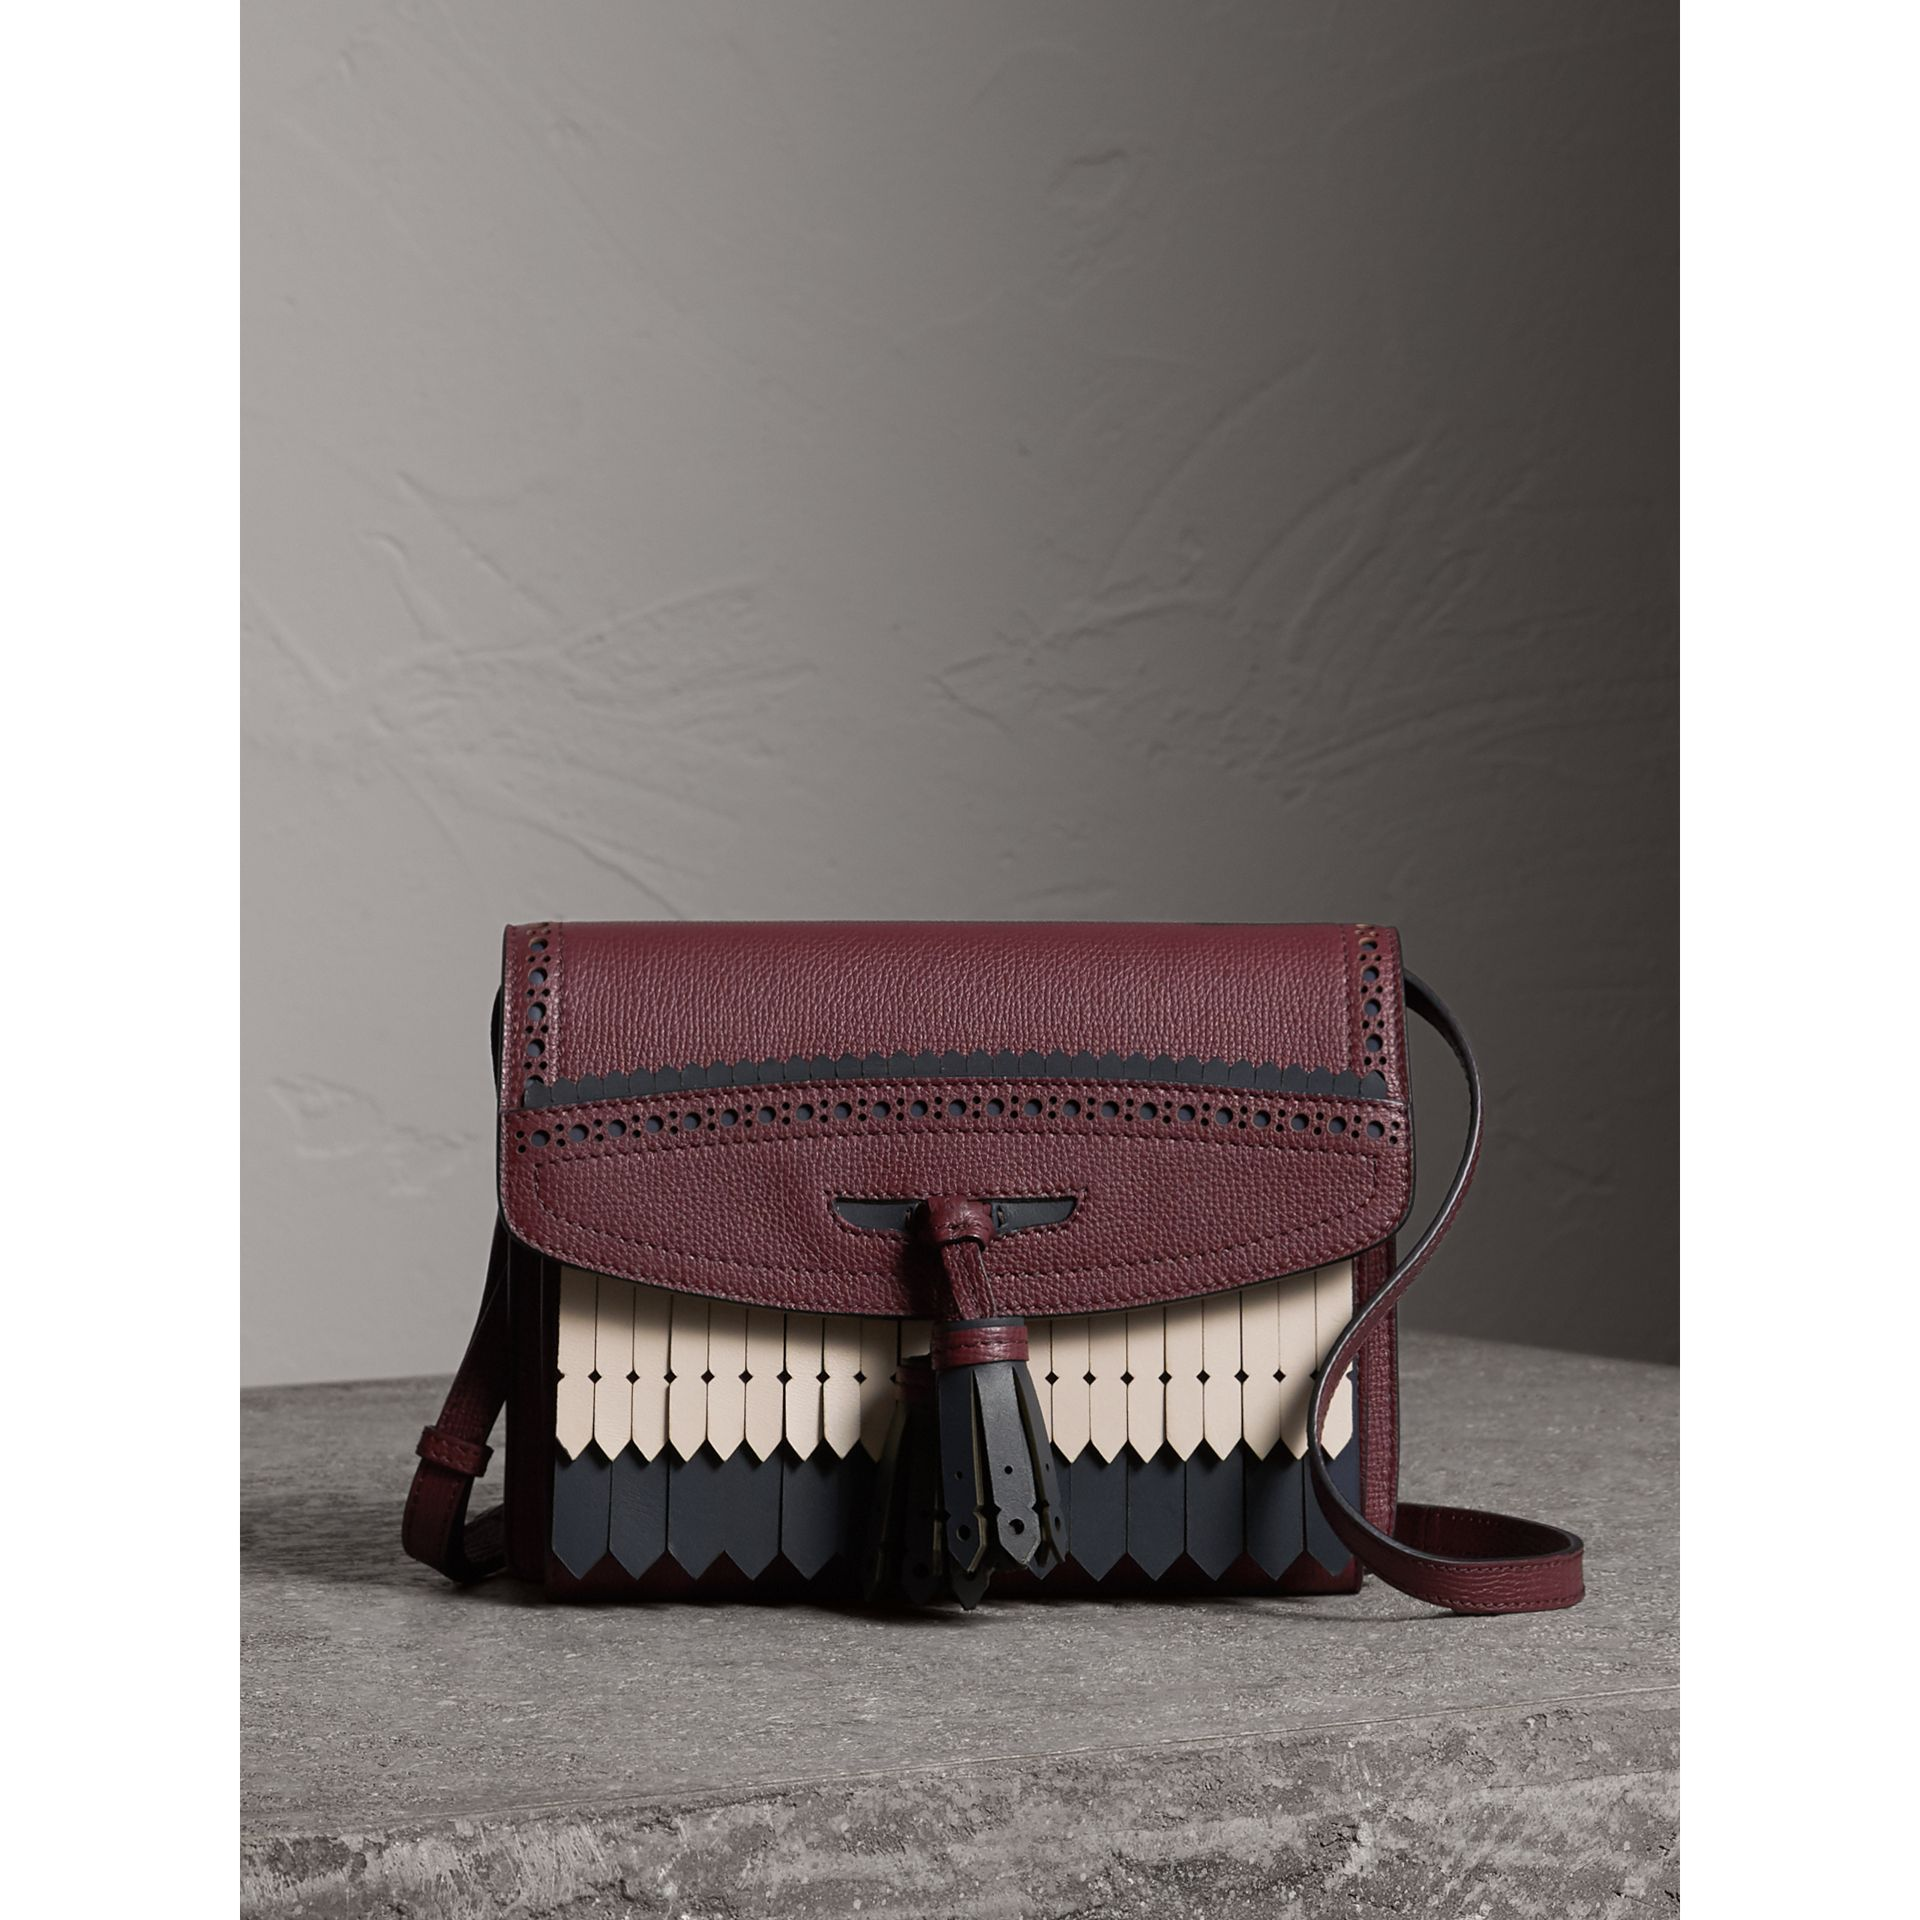 Brogue and Fringe Detail Leather Crossbody Bag in Mahogany Red - Women | Burberry - gallery image 1